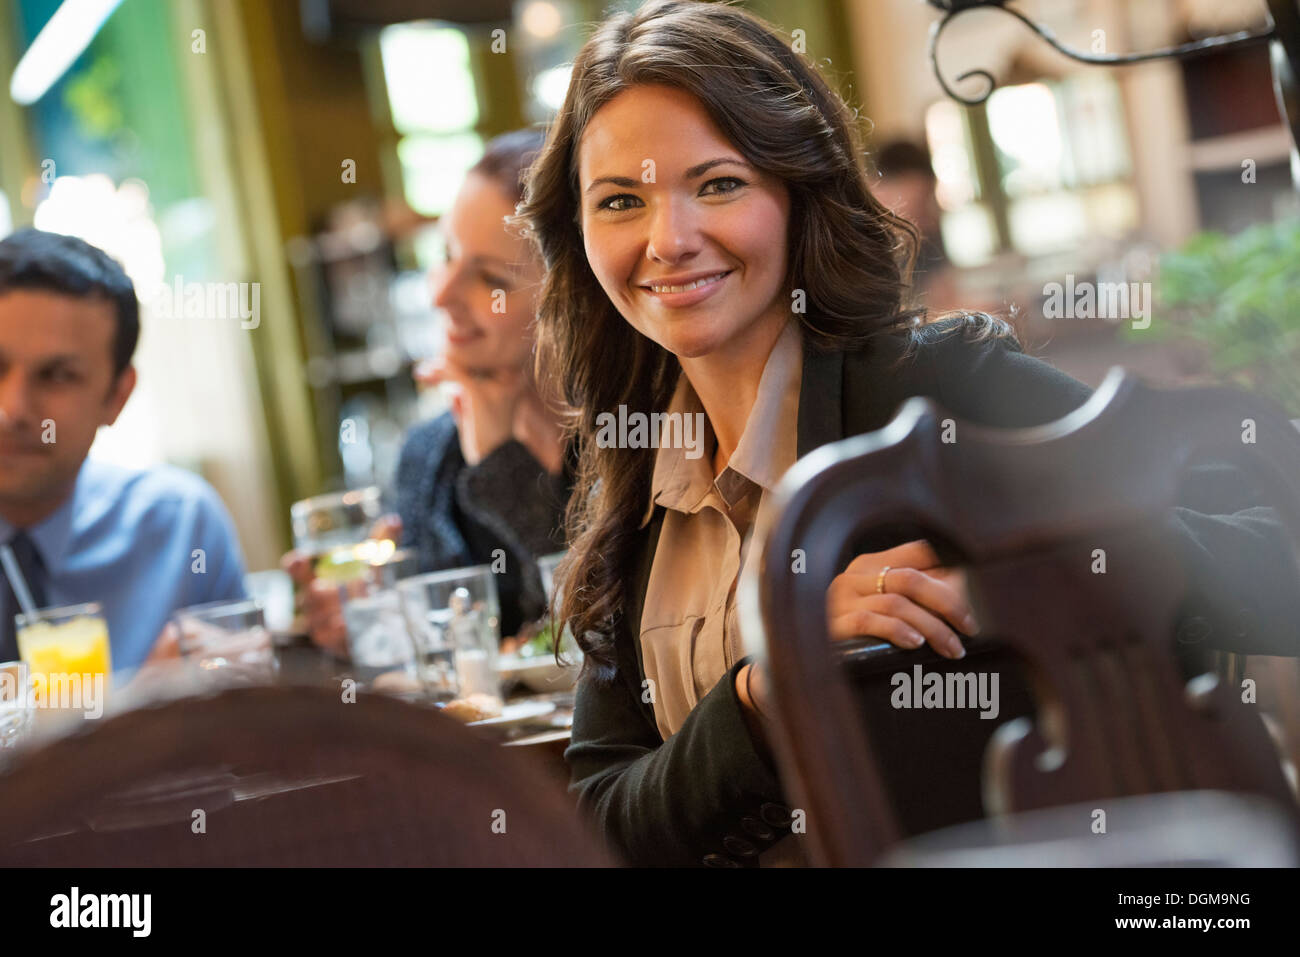 Business people. Three people around a cafe table, one woman turning to smile at the camera. - Stock Image